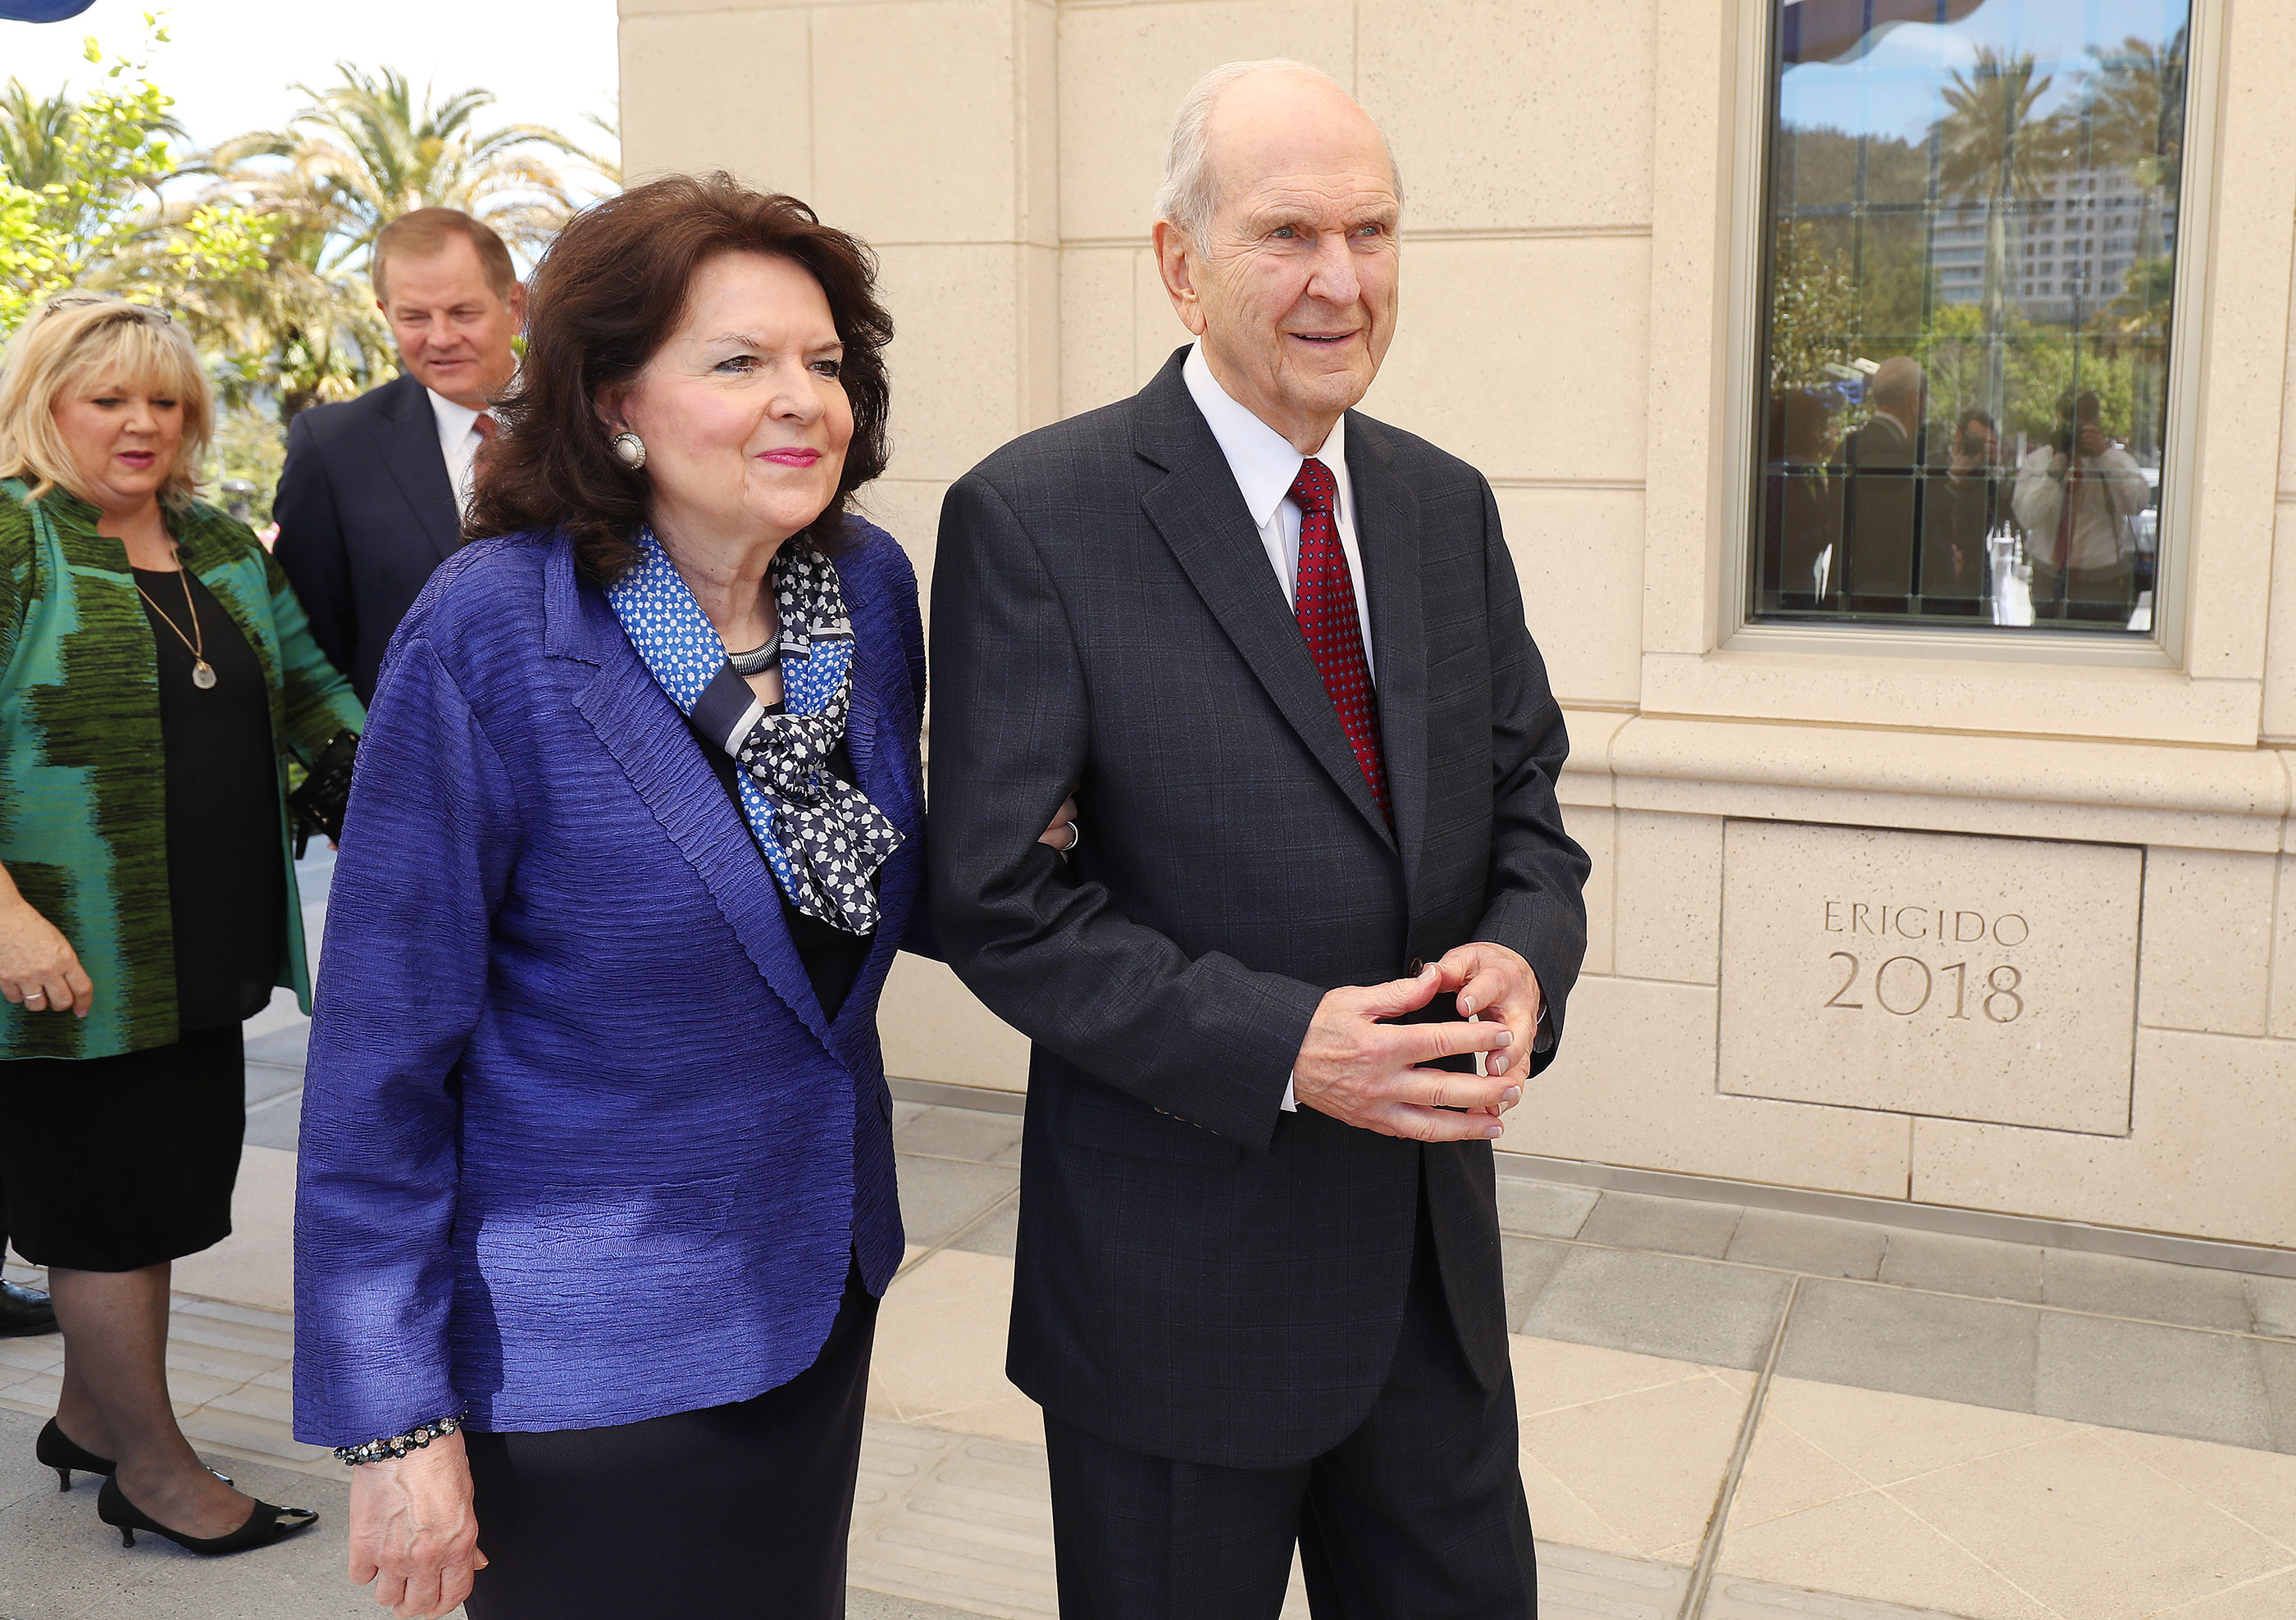 President Russell M. Nelson of The Church of Jesus Christ of Latter-day Saints and his wife, Sister Wendy Nelson, and Elder Gary E. Stevenson of the Quorum of the Twelve Apostles, and his wife, Sister Lesa Stevenson, walk near the temple in Concepcion, Chile, on Saturday, Oct. 27, 2018.